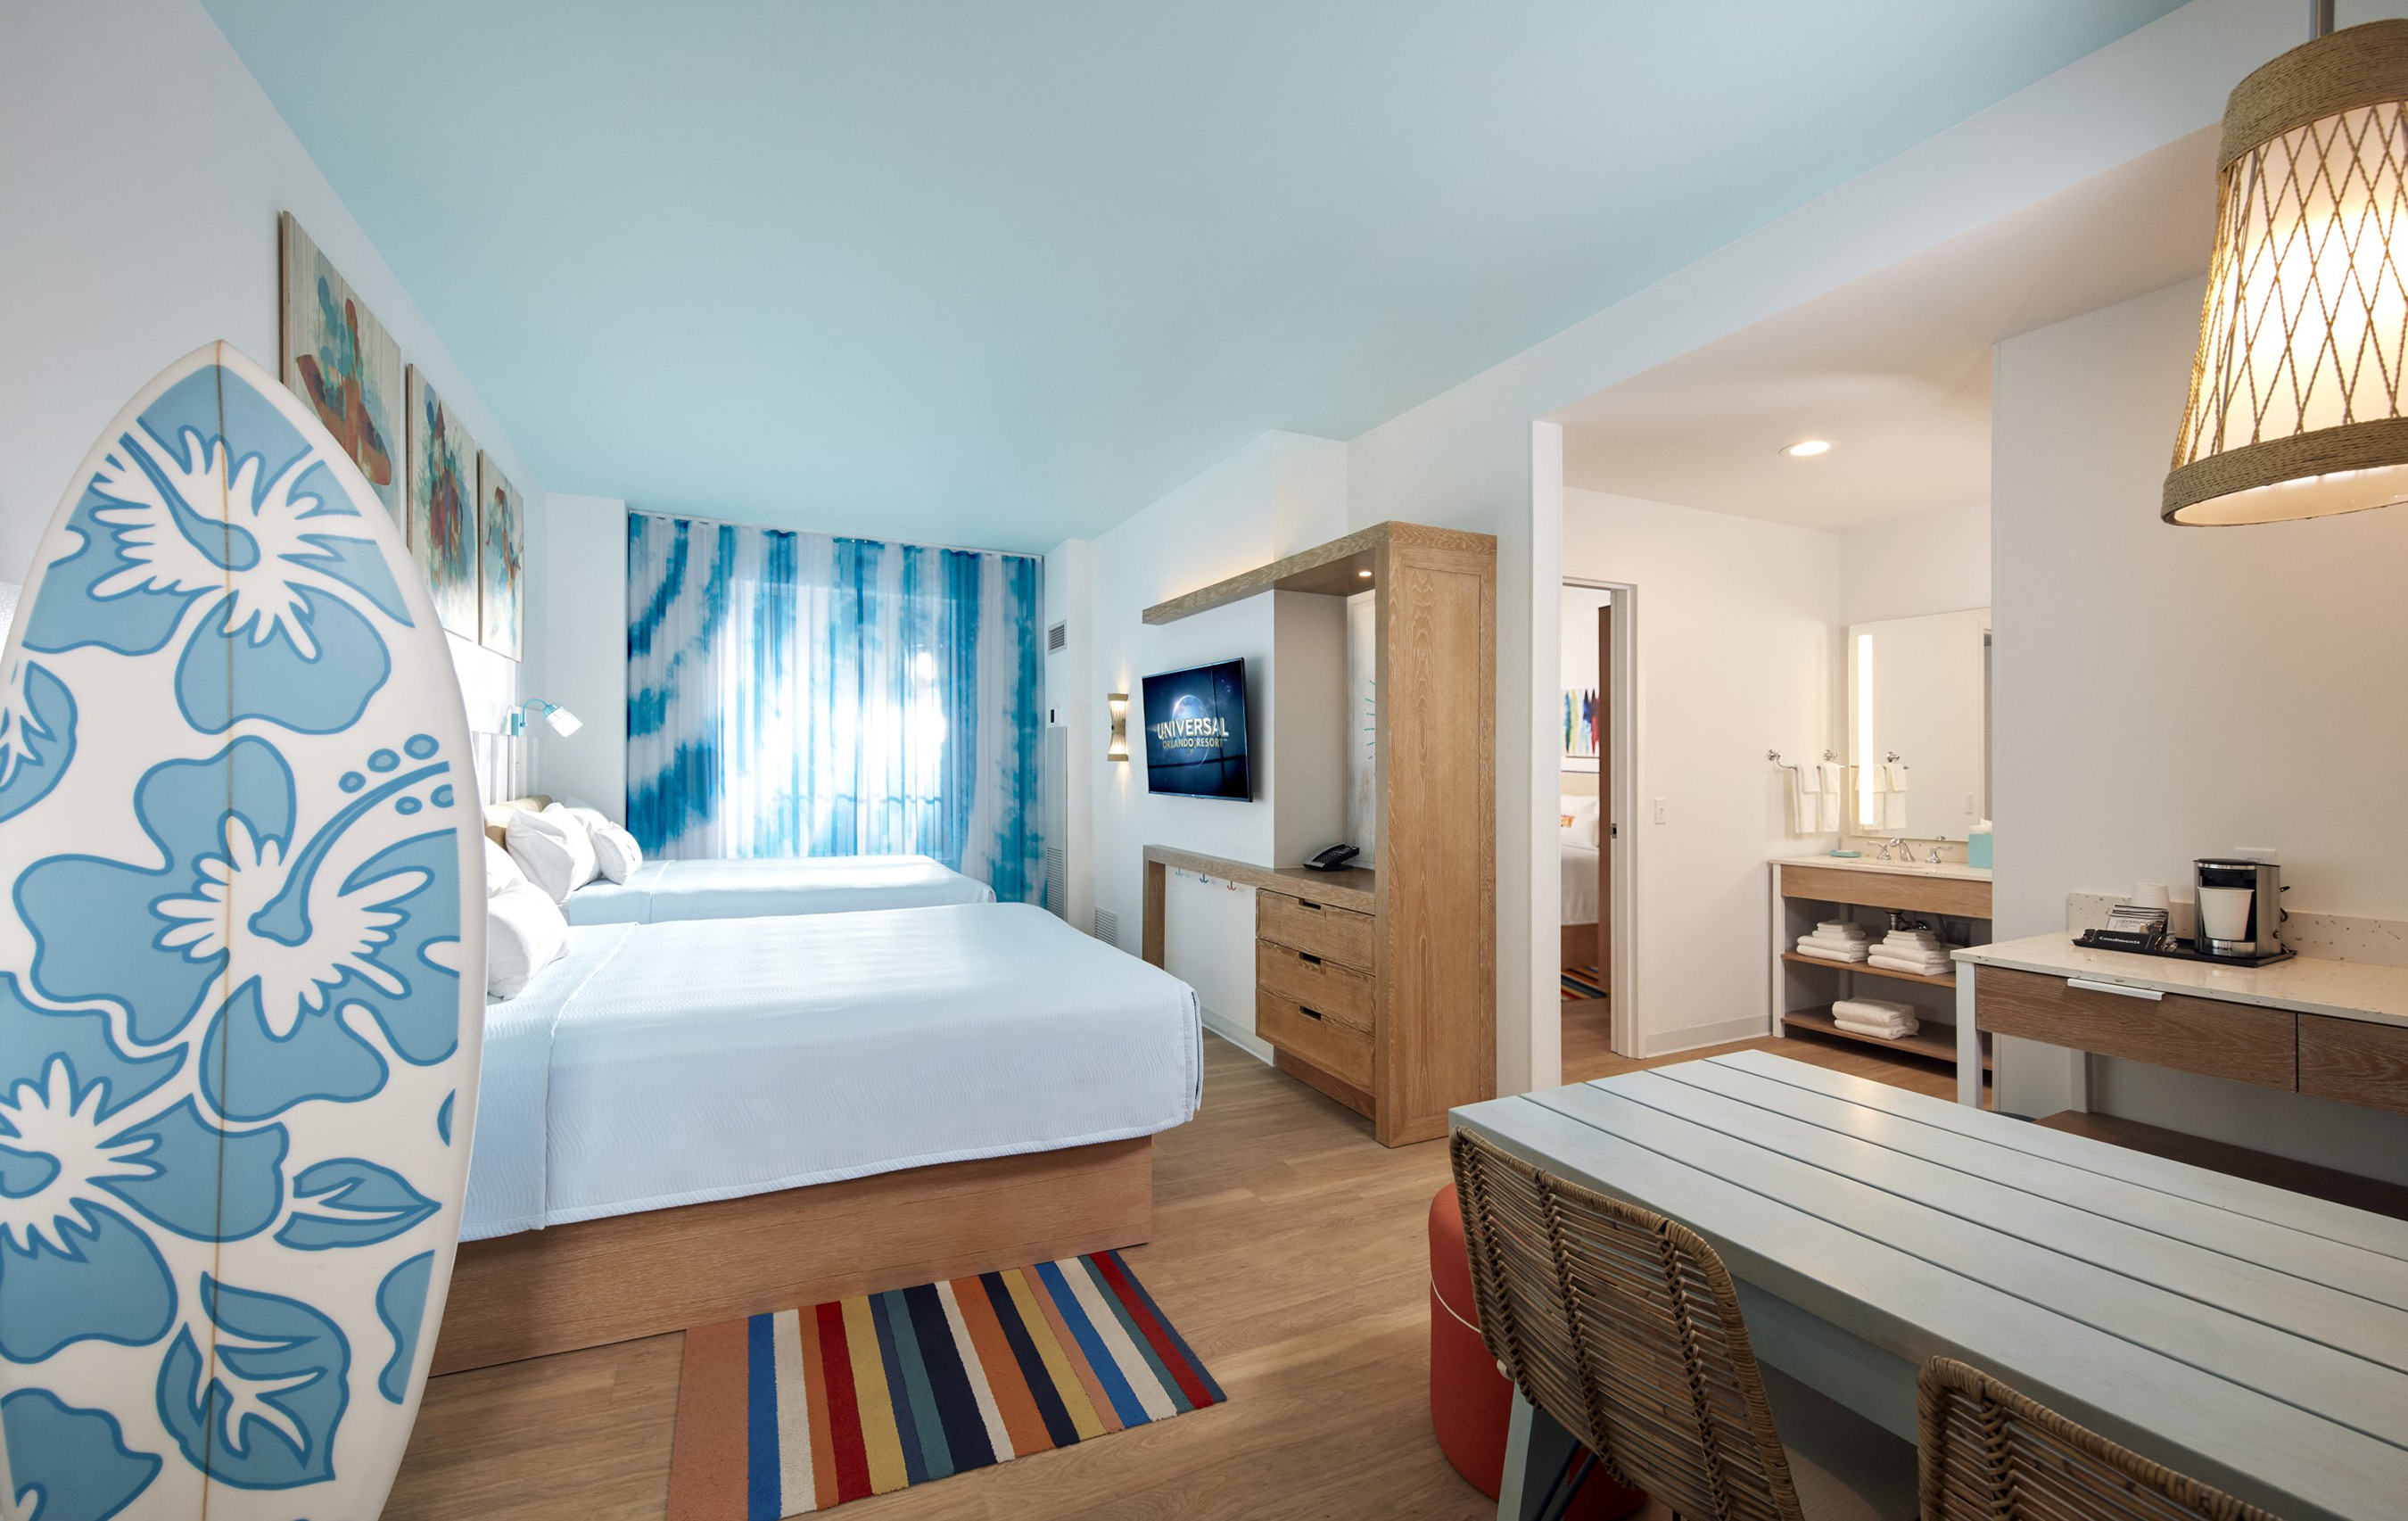 Surfside Inn and Suites at Universal Orlando Resort will open in summer 2019, the first of two new value hotels that will make up Universal's Endless Summer Resort.